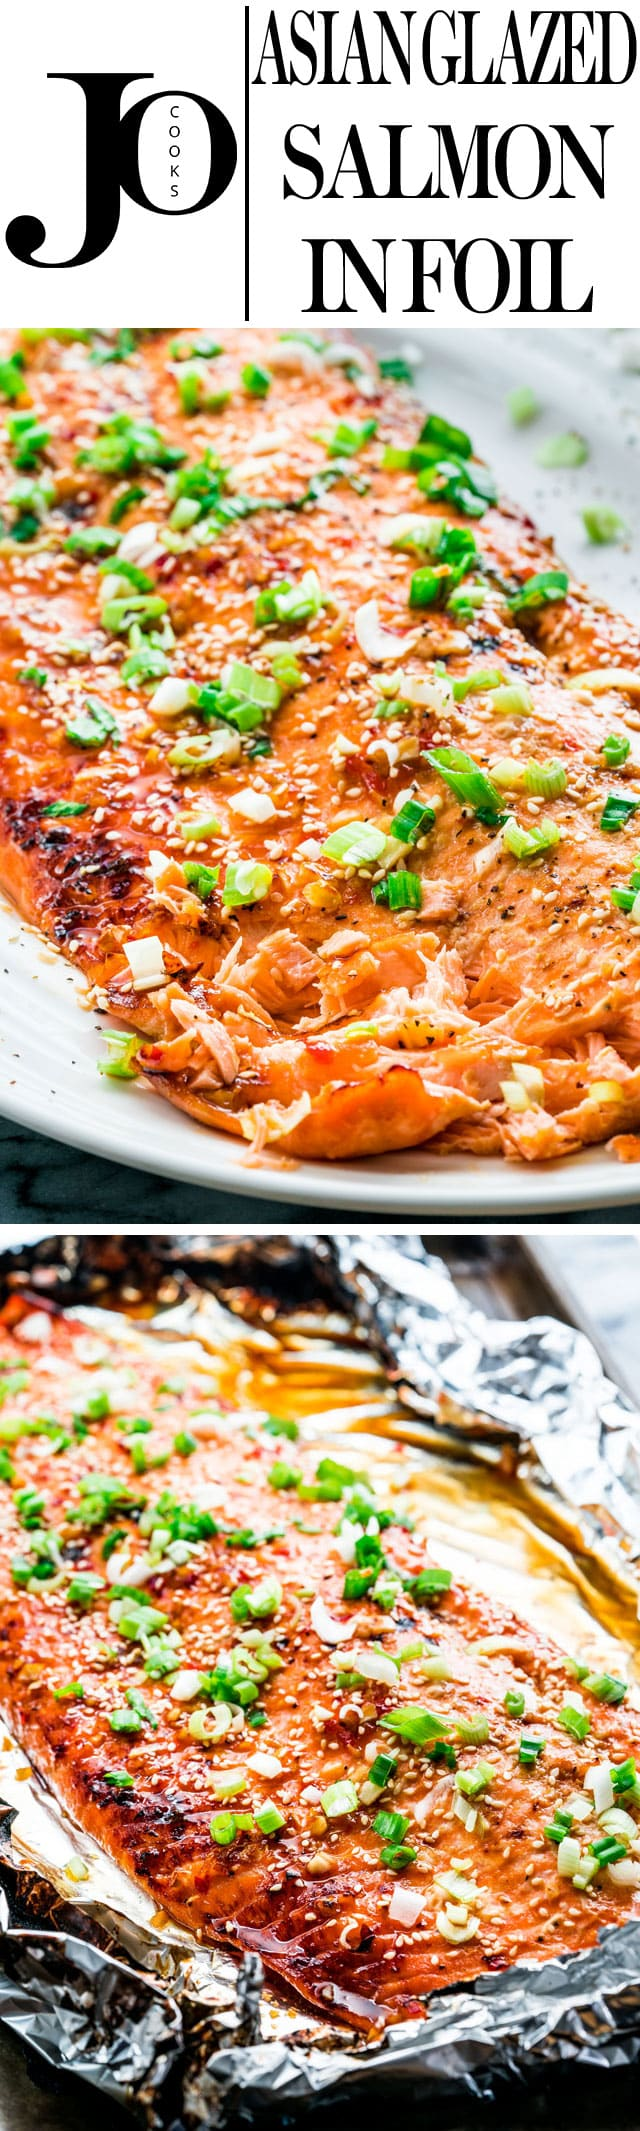 This Asian Glazed Salmon in Foil is probably the easiest way to make fish. This salmon bakes in 25 minutes, it's juicy and loaded with flavor, not to mention it's really healthy and good for you! www.jocooks.com #salmon